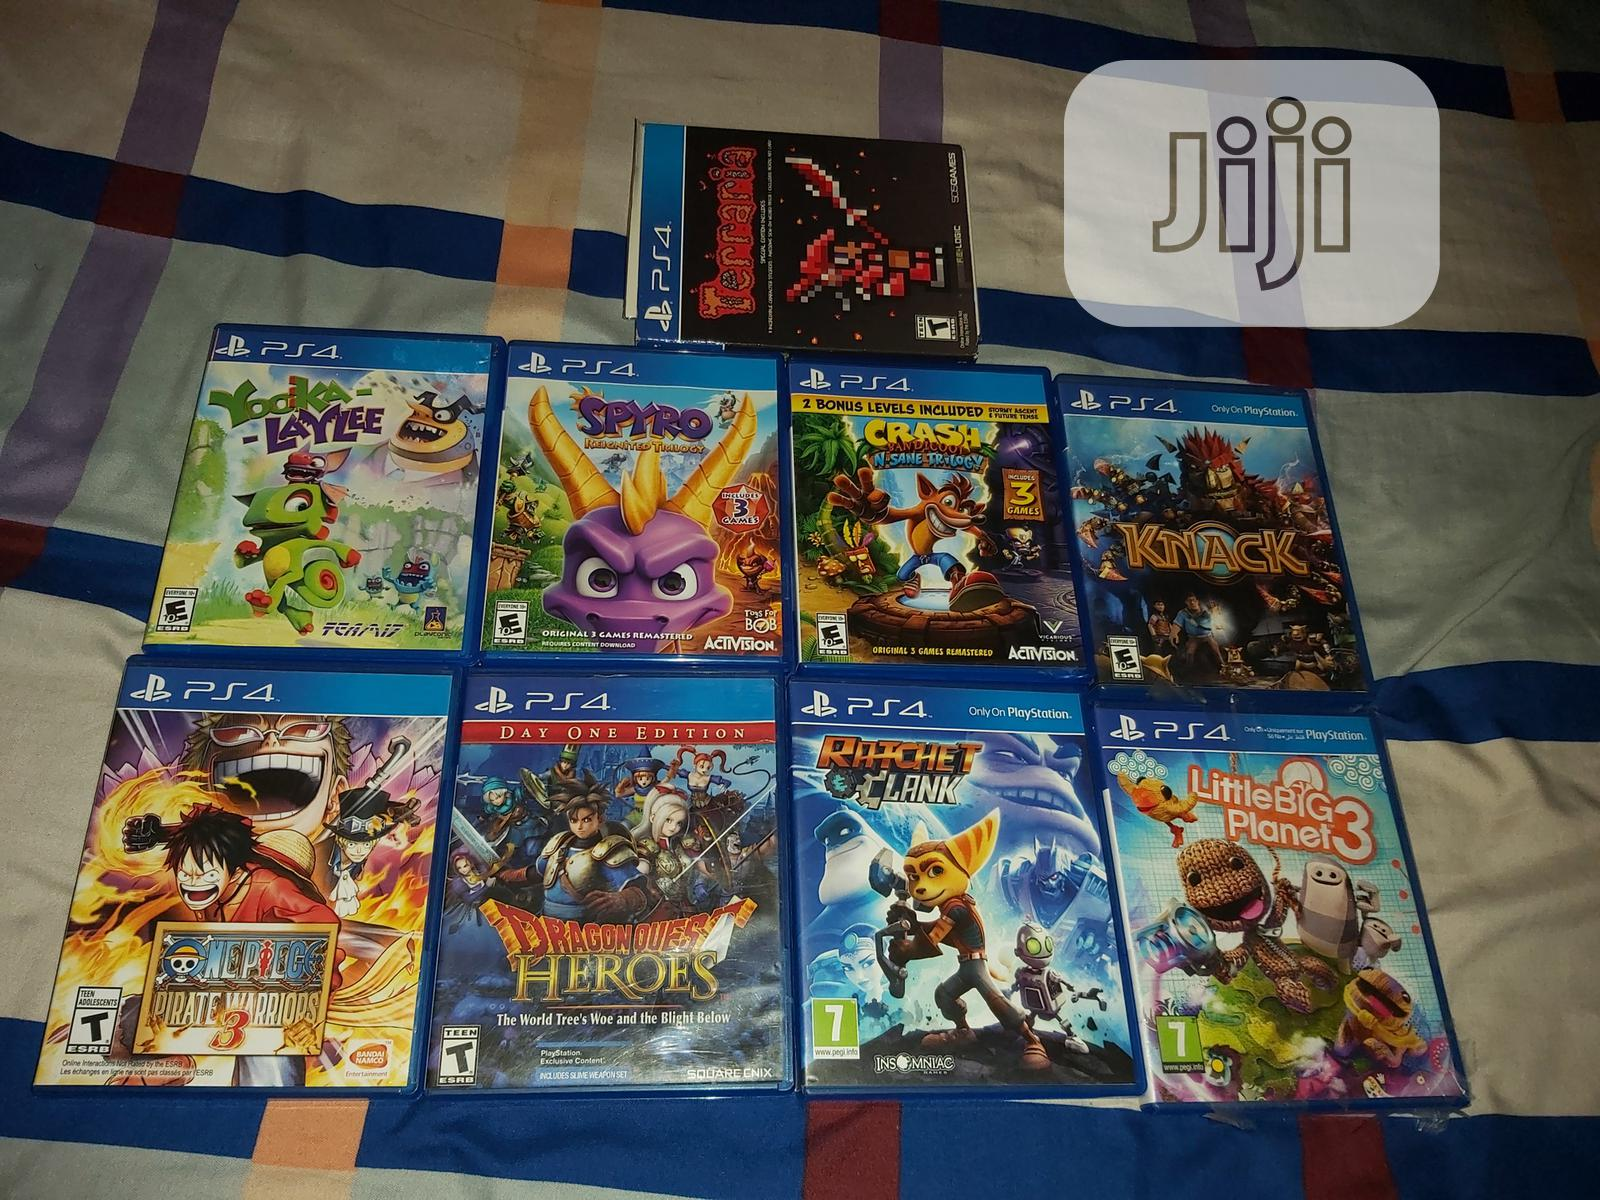 Ps4 Games For Kids In Surulere Video Games Jay Bazka Jiji Ng For Sale In Surulere Buy Video Games From Jay Bazka On Jiji Ng